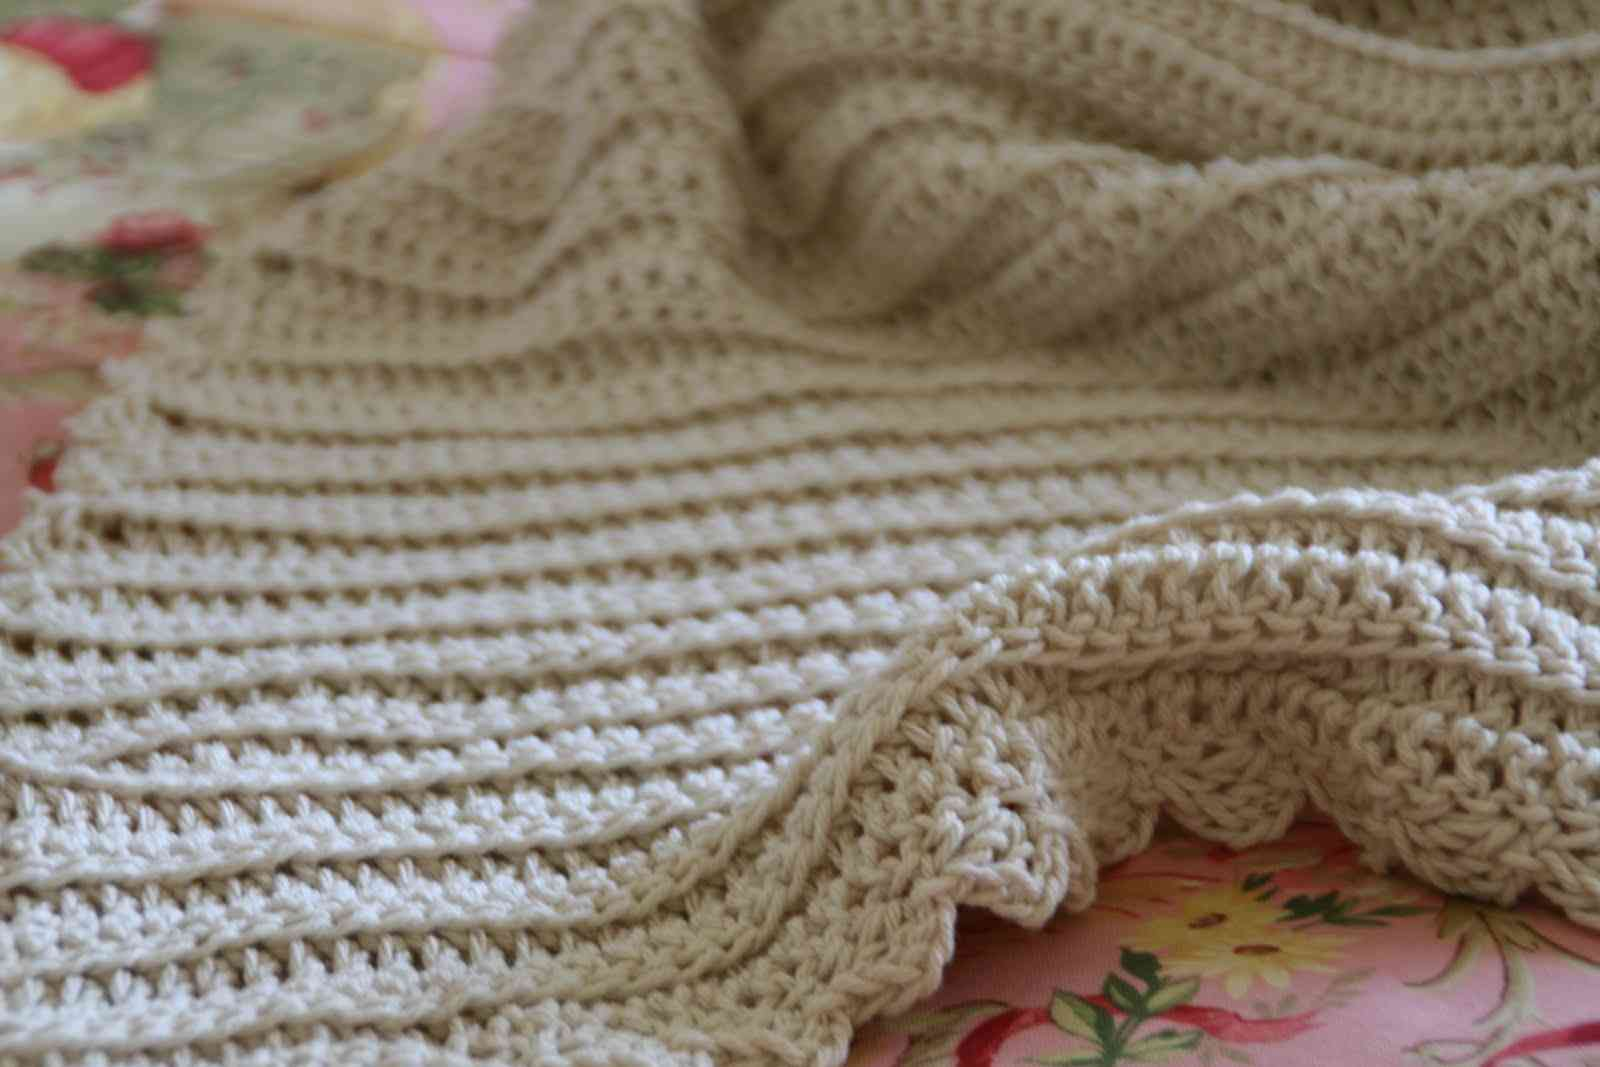 Easy Crochet Patterns For Baby Blankets : 15 Most Popular Free Crochet Baby Blanket Patterns